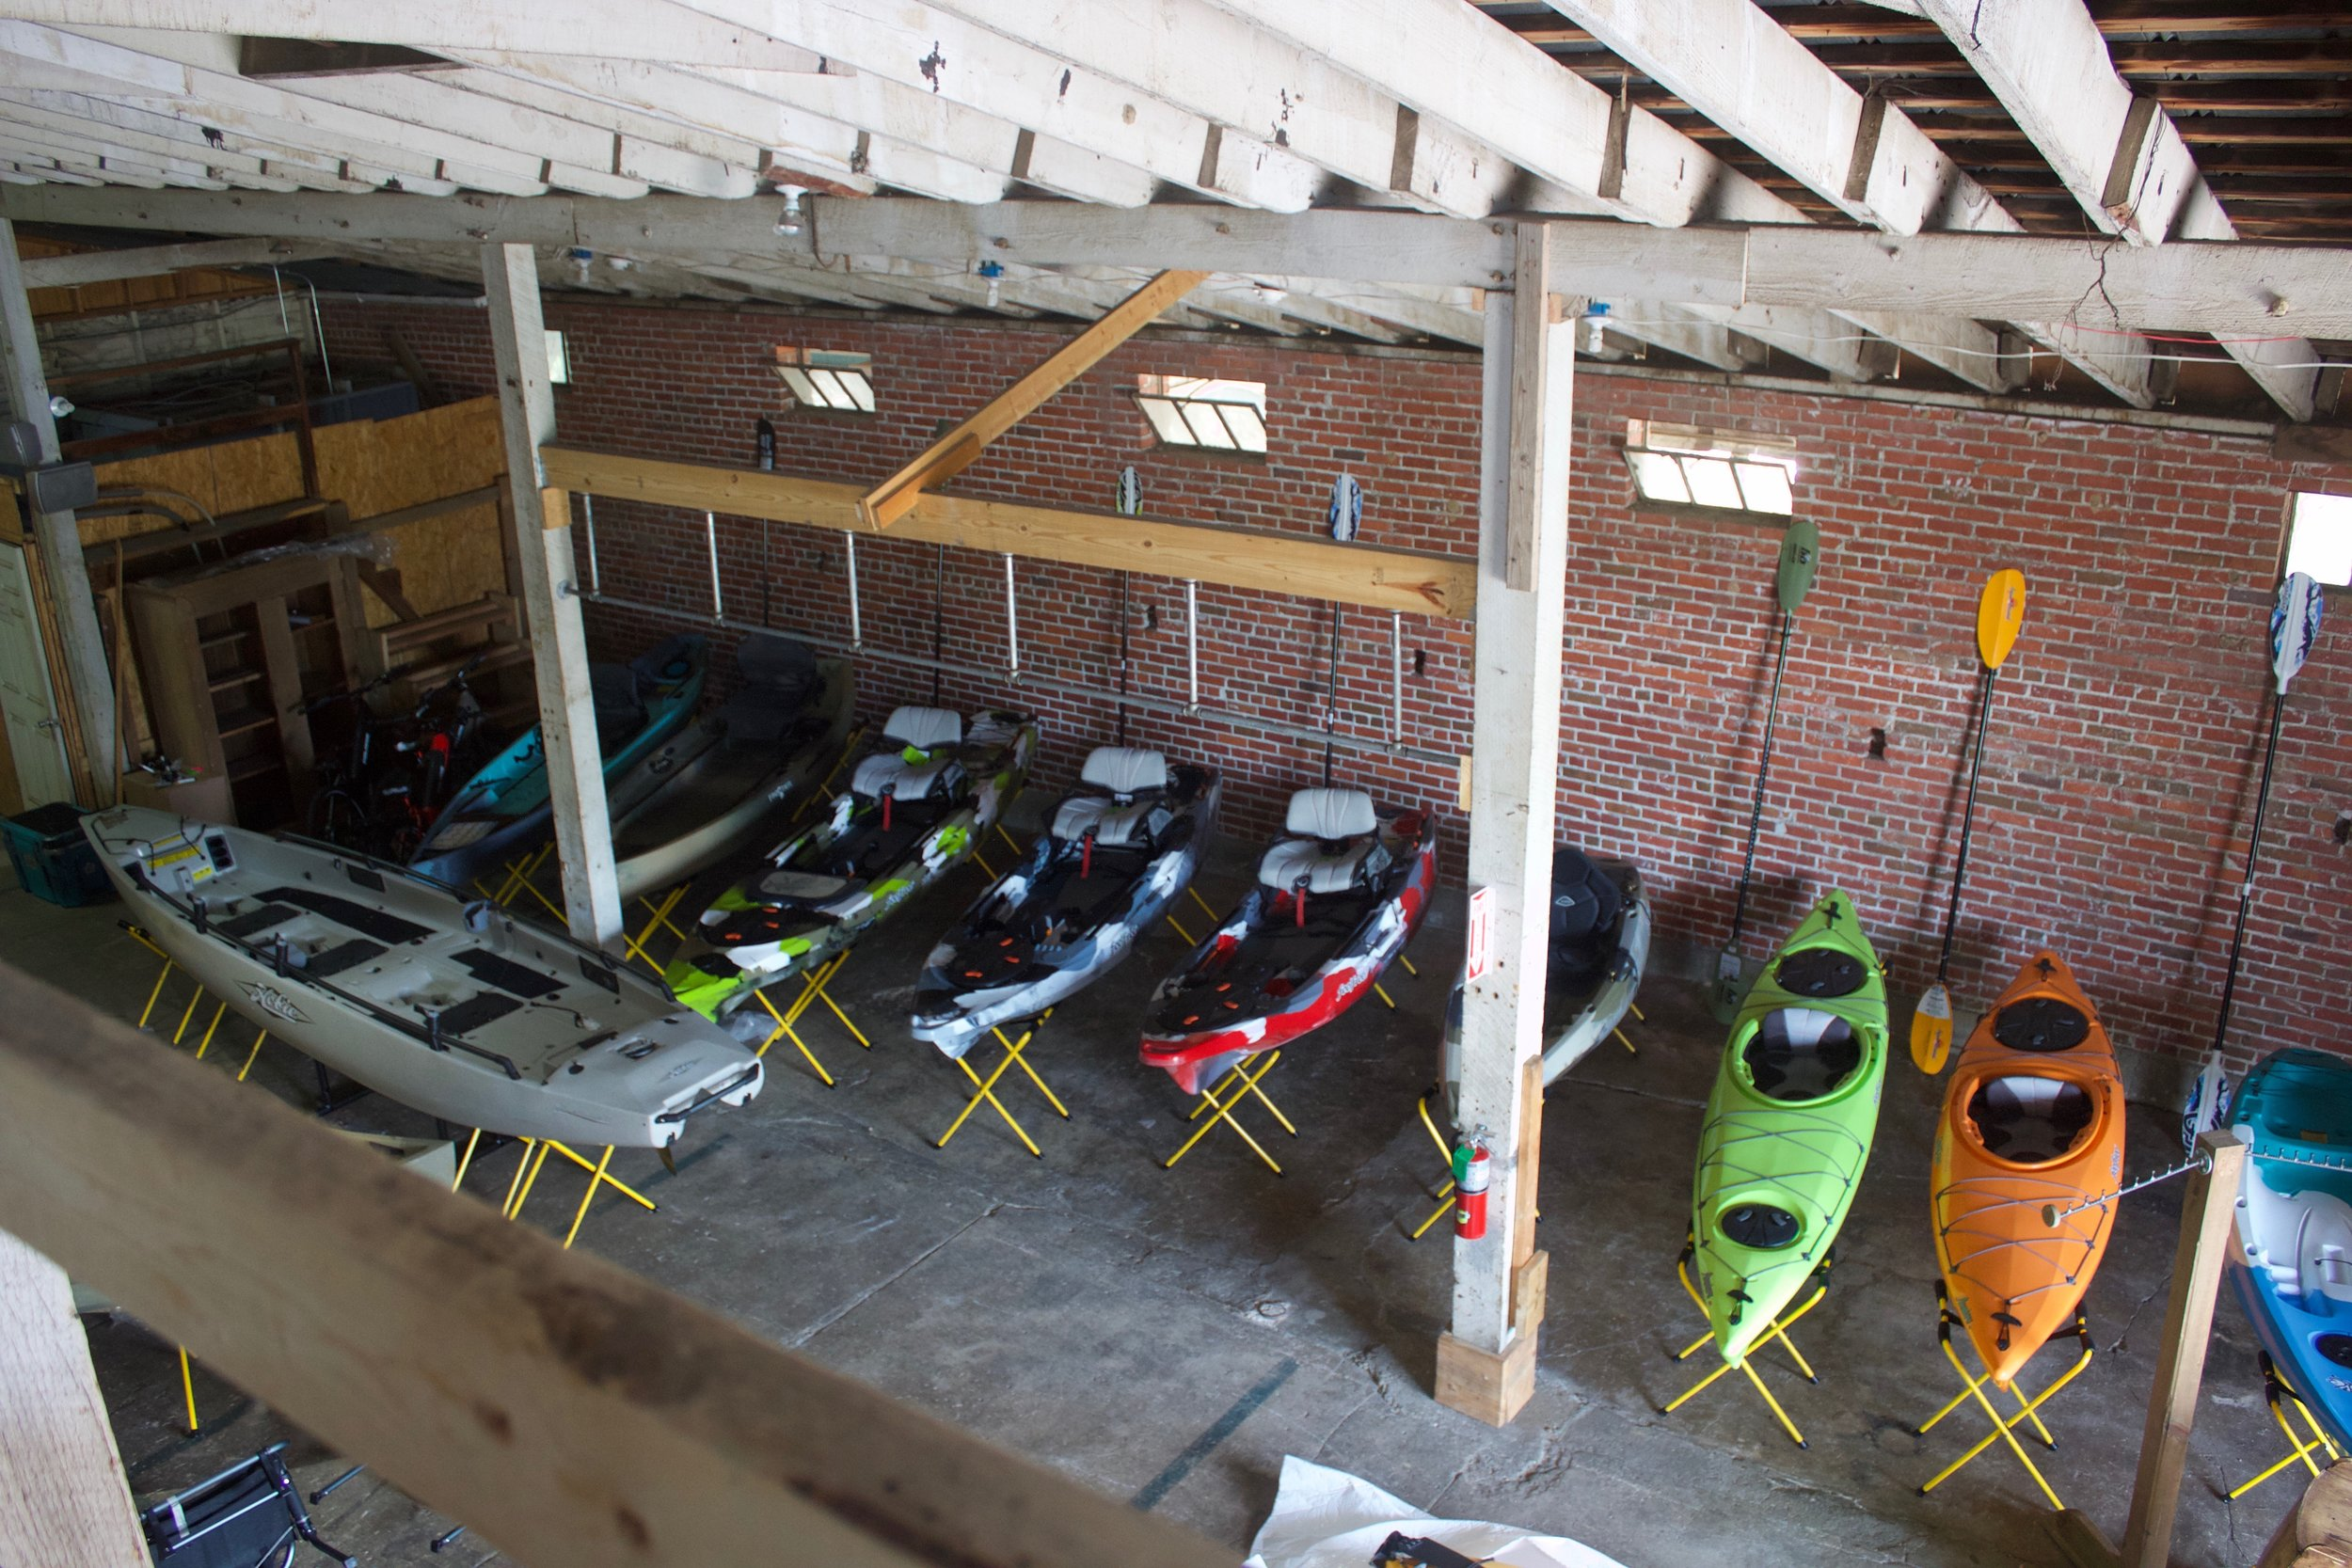 SY Wilson's sells everything, including kayaks.